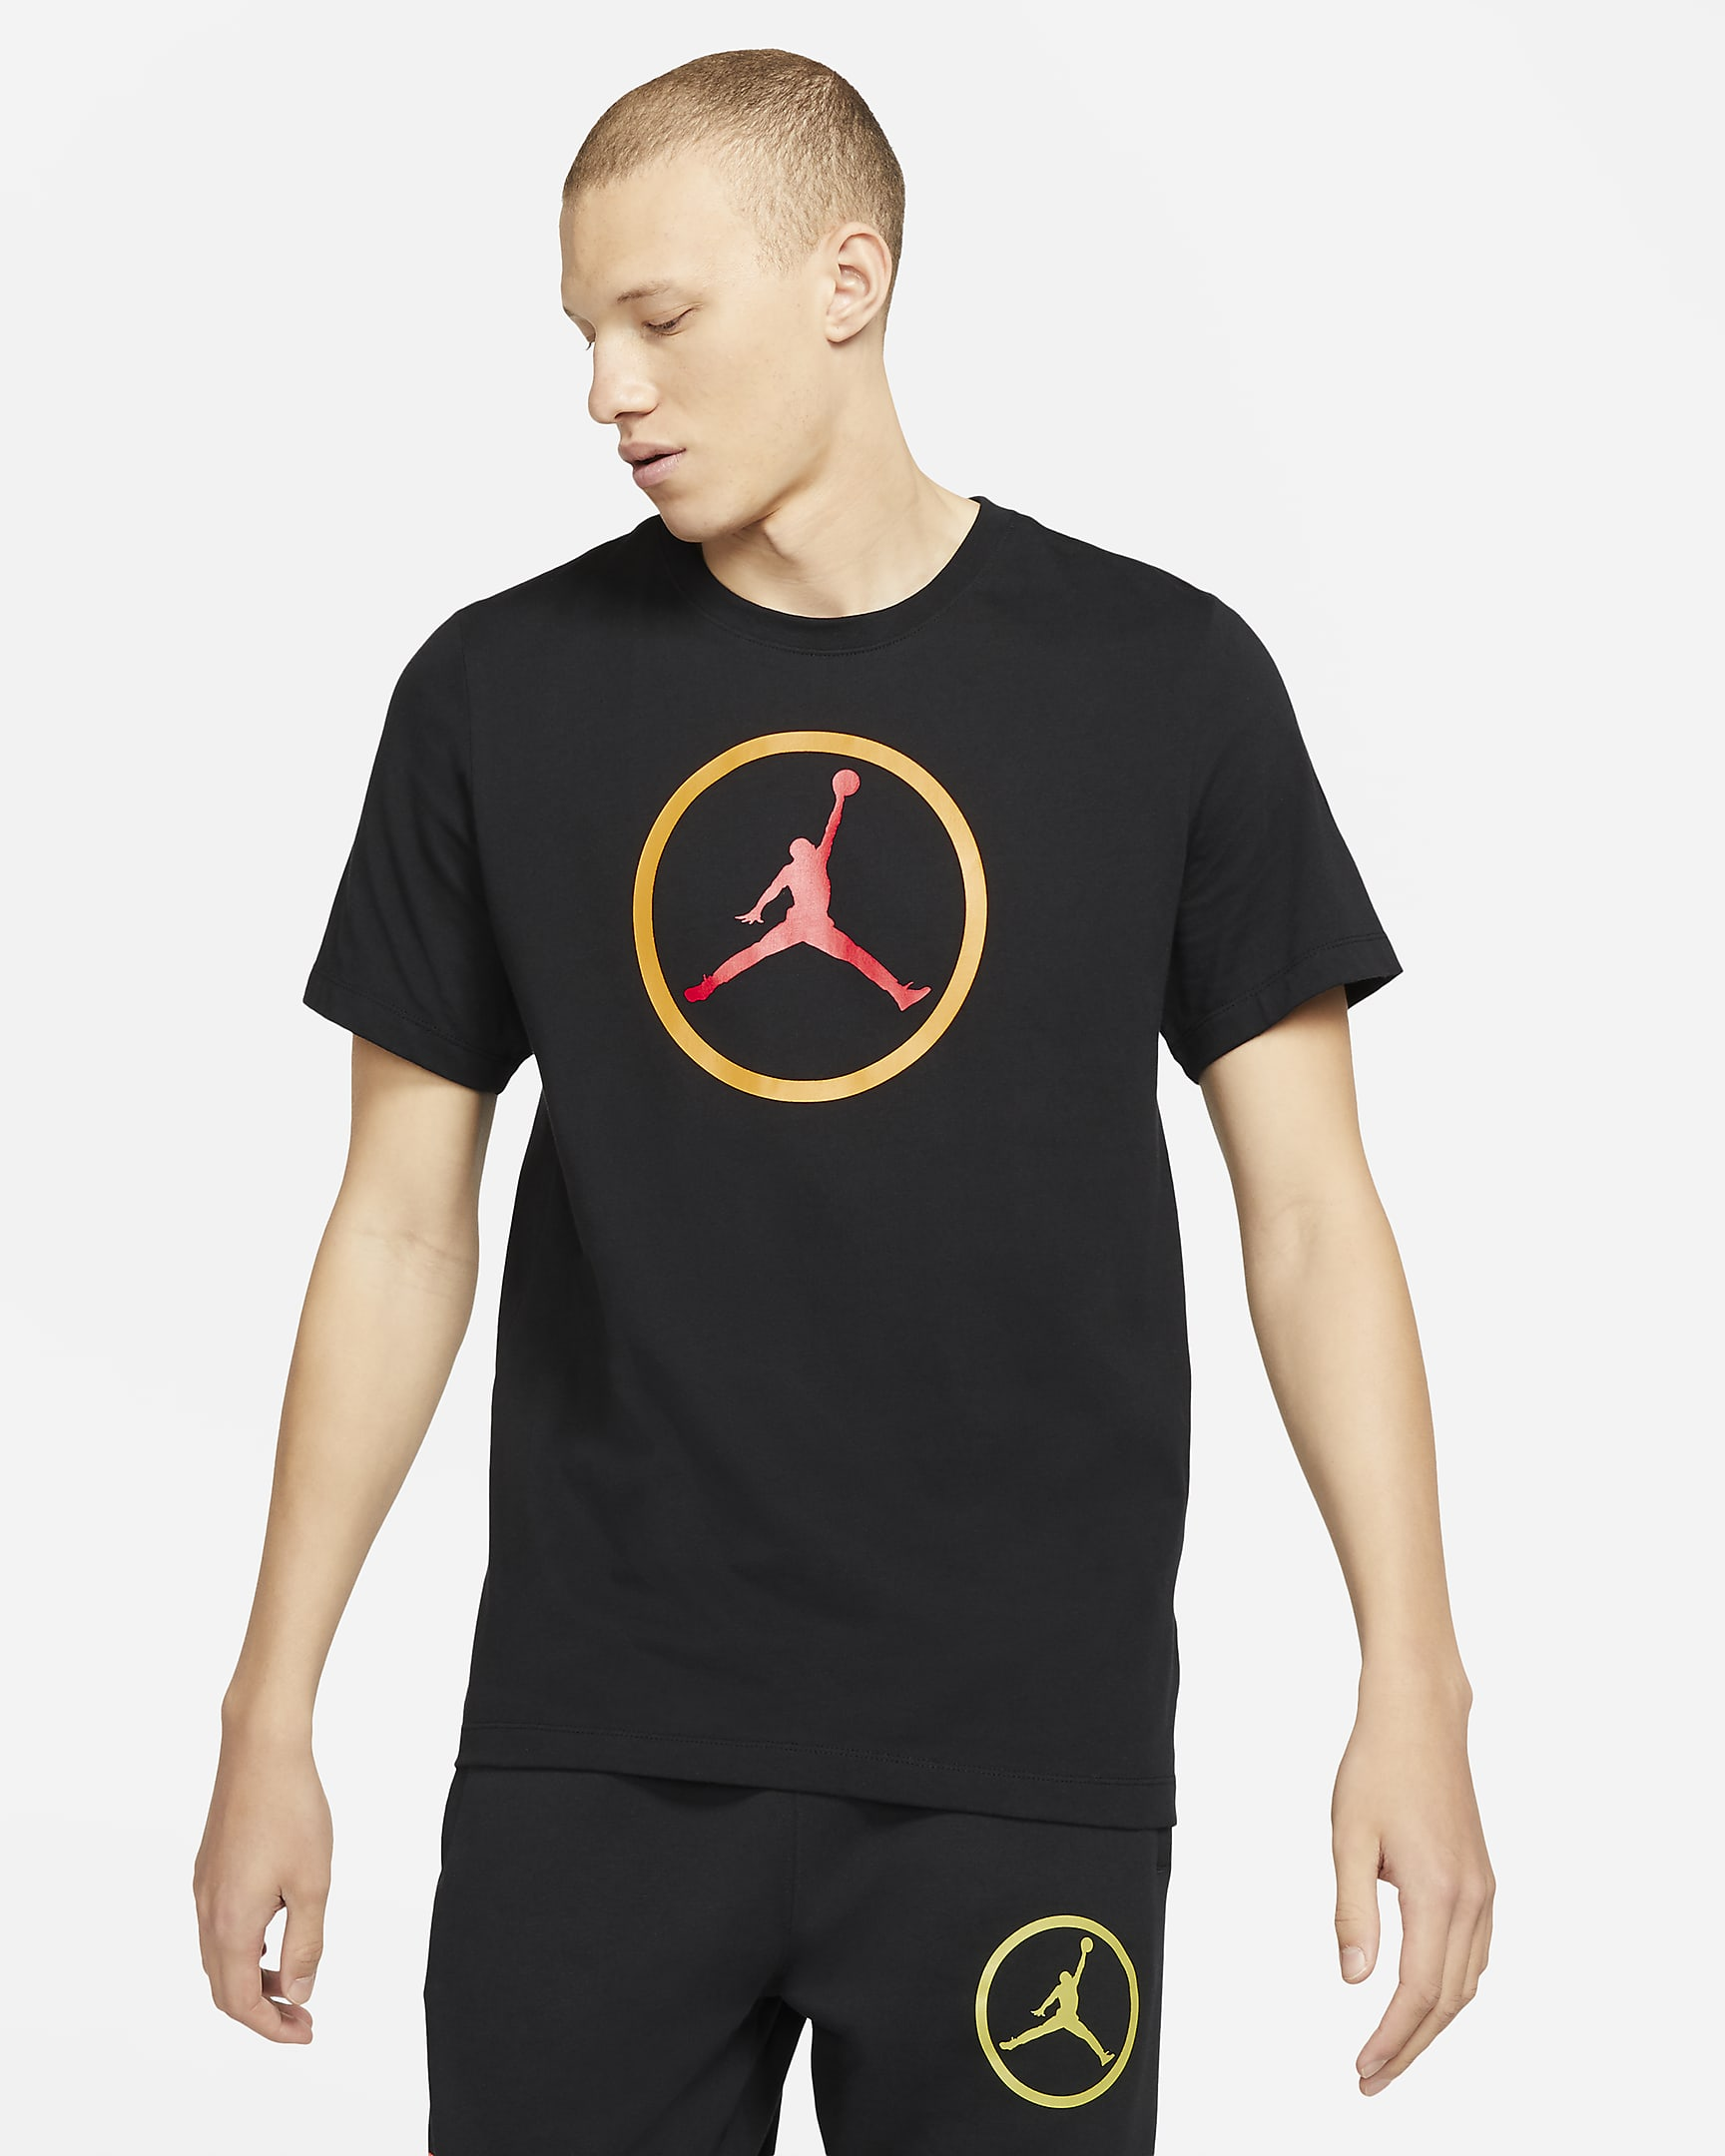 jordan-sport-dna-mens-short-sleeve-t-shirt-V7W2kx